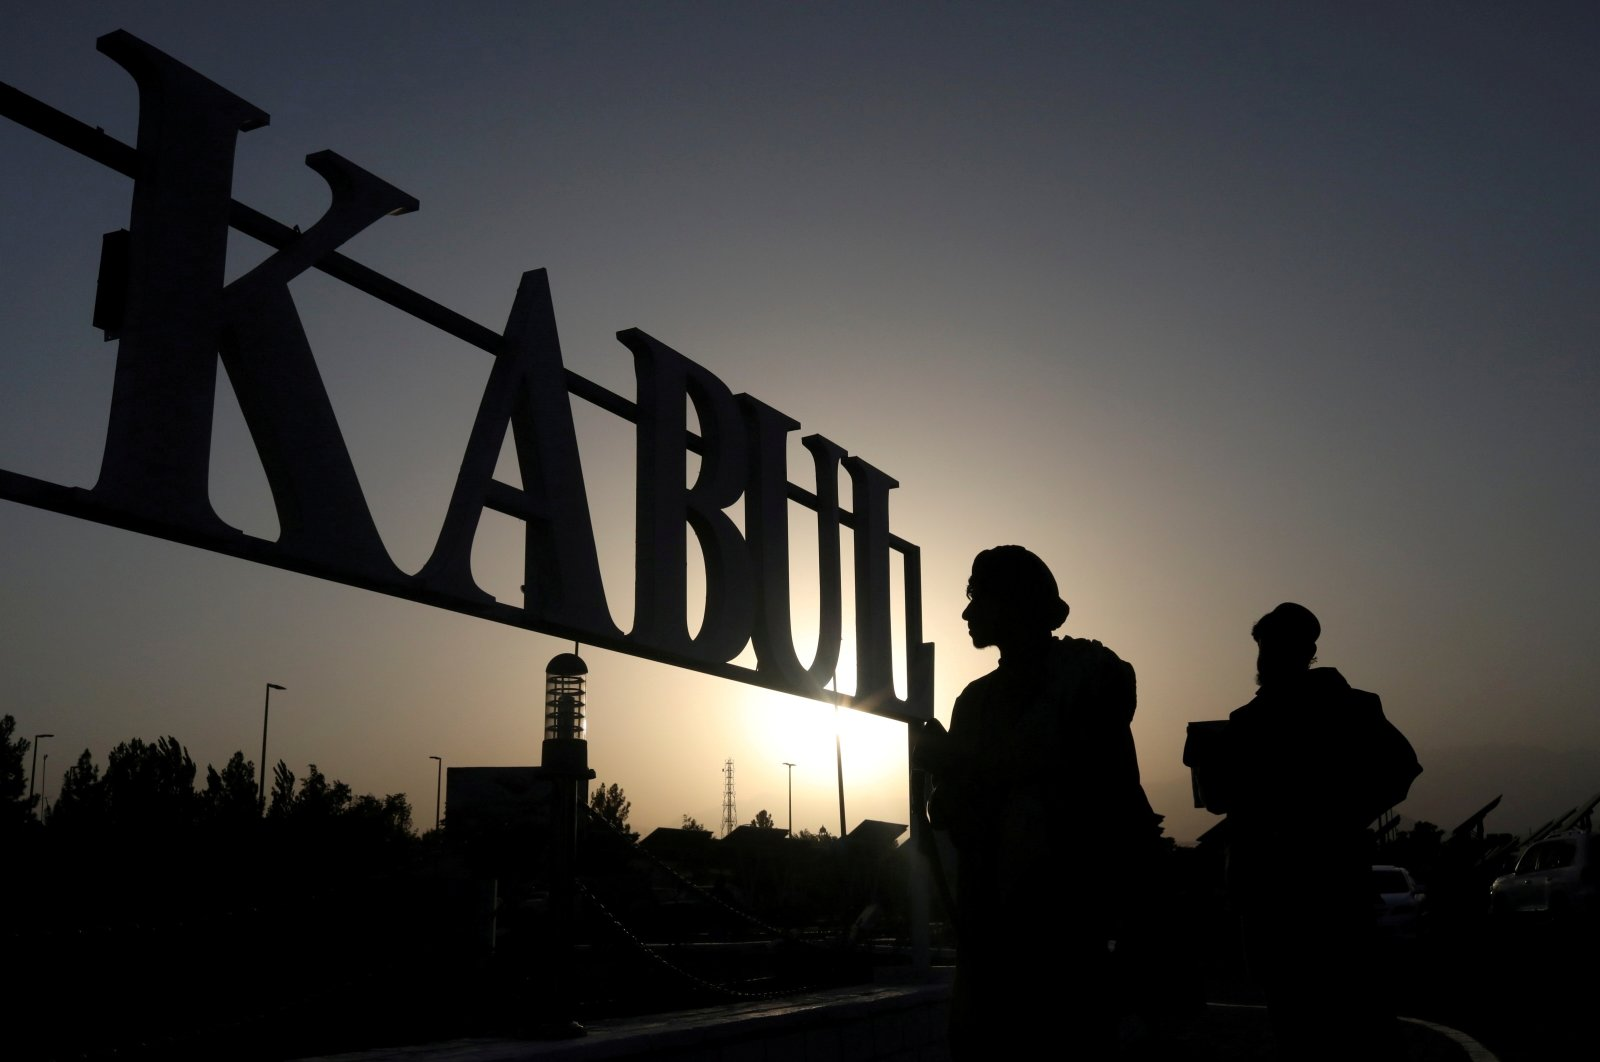 Taliban soldiers stand in front of a sign at Kabul Hamid Karzai International Airport  in Kabul, Afghanistan, Sept. 9, 2021. (REUTERS Photo)